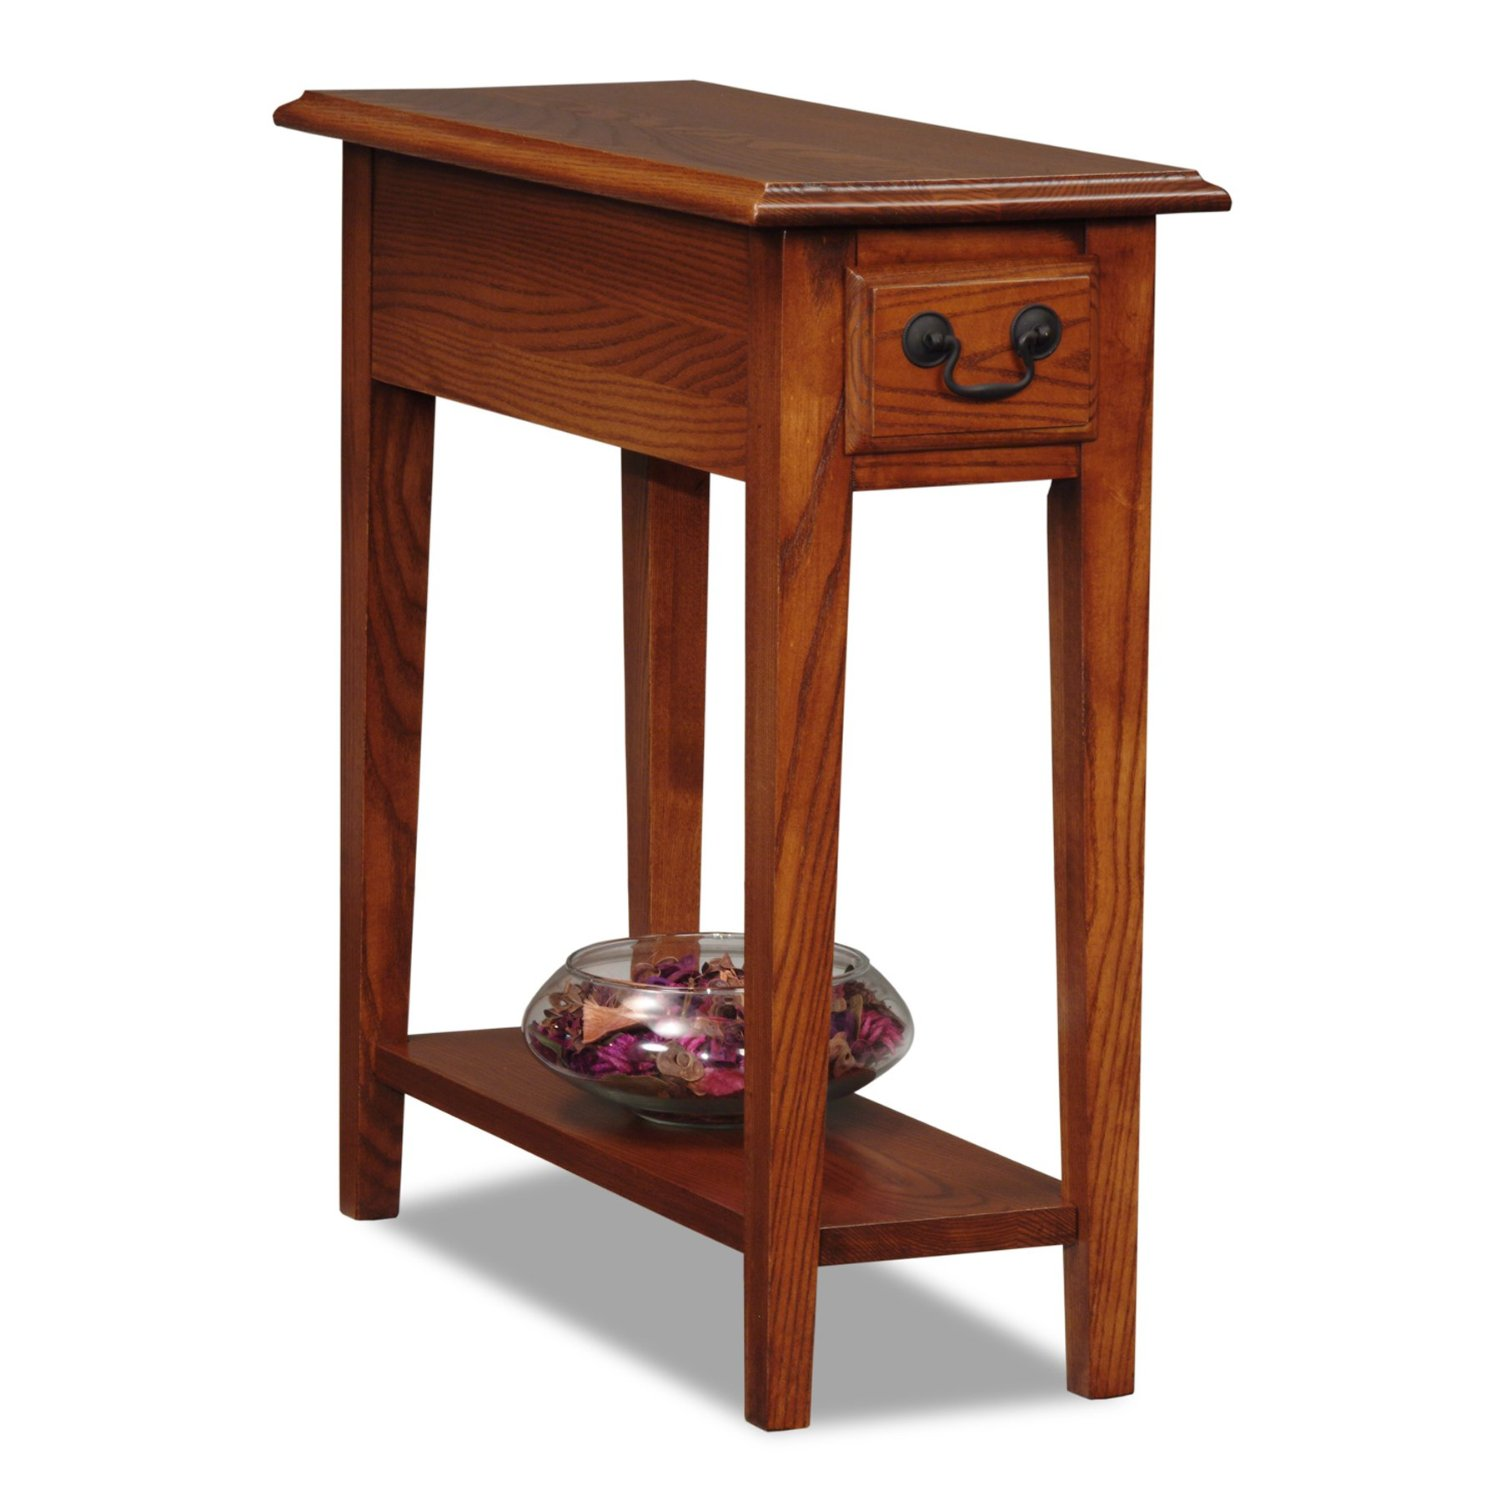 end tables trends including tall black table tures kalvez little short rectangle north shore coffee set home sense london ontario glass display case cork patio solid wood lift